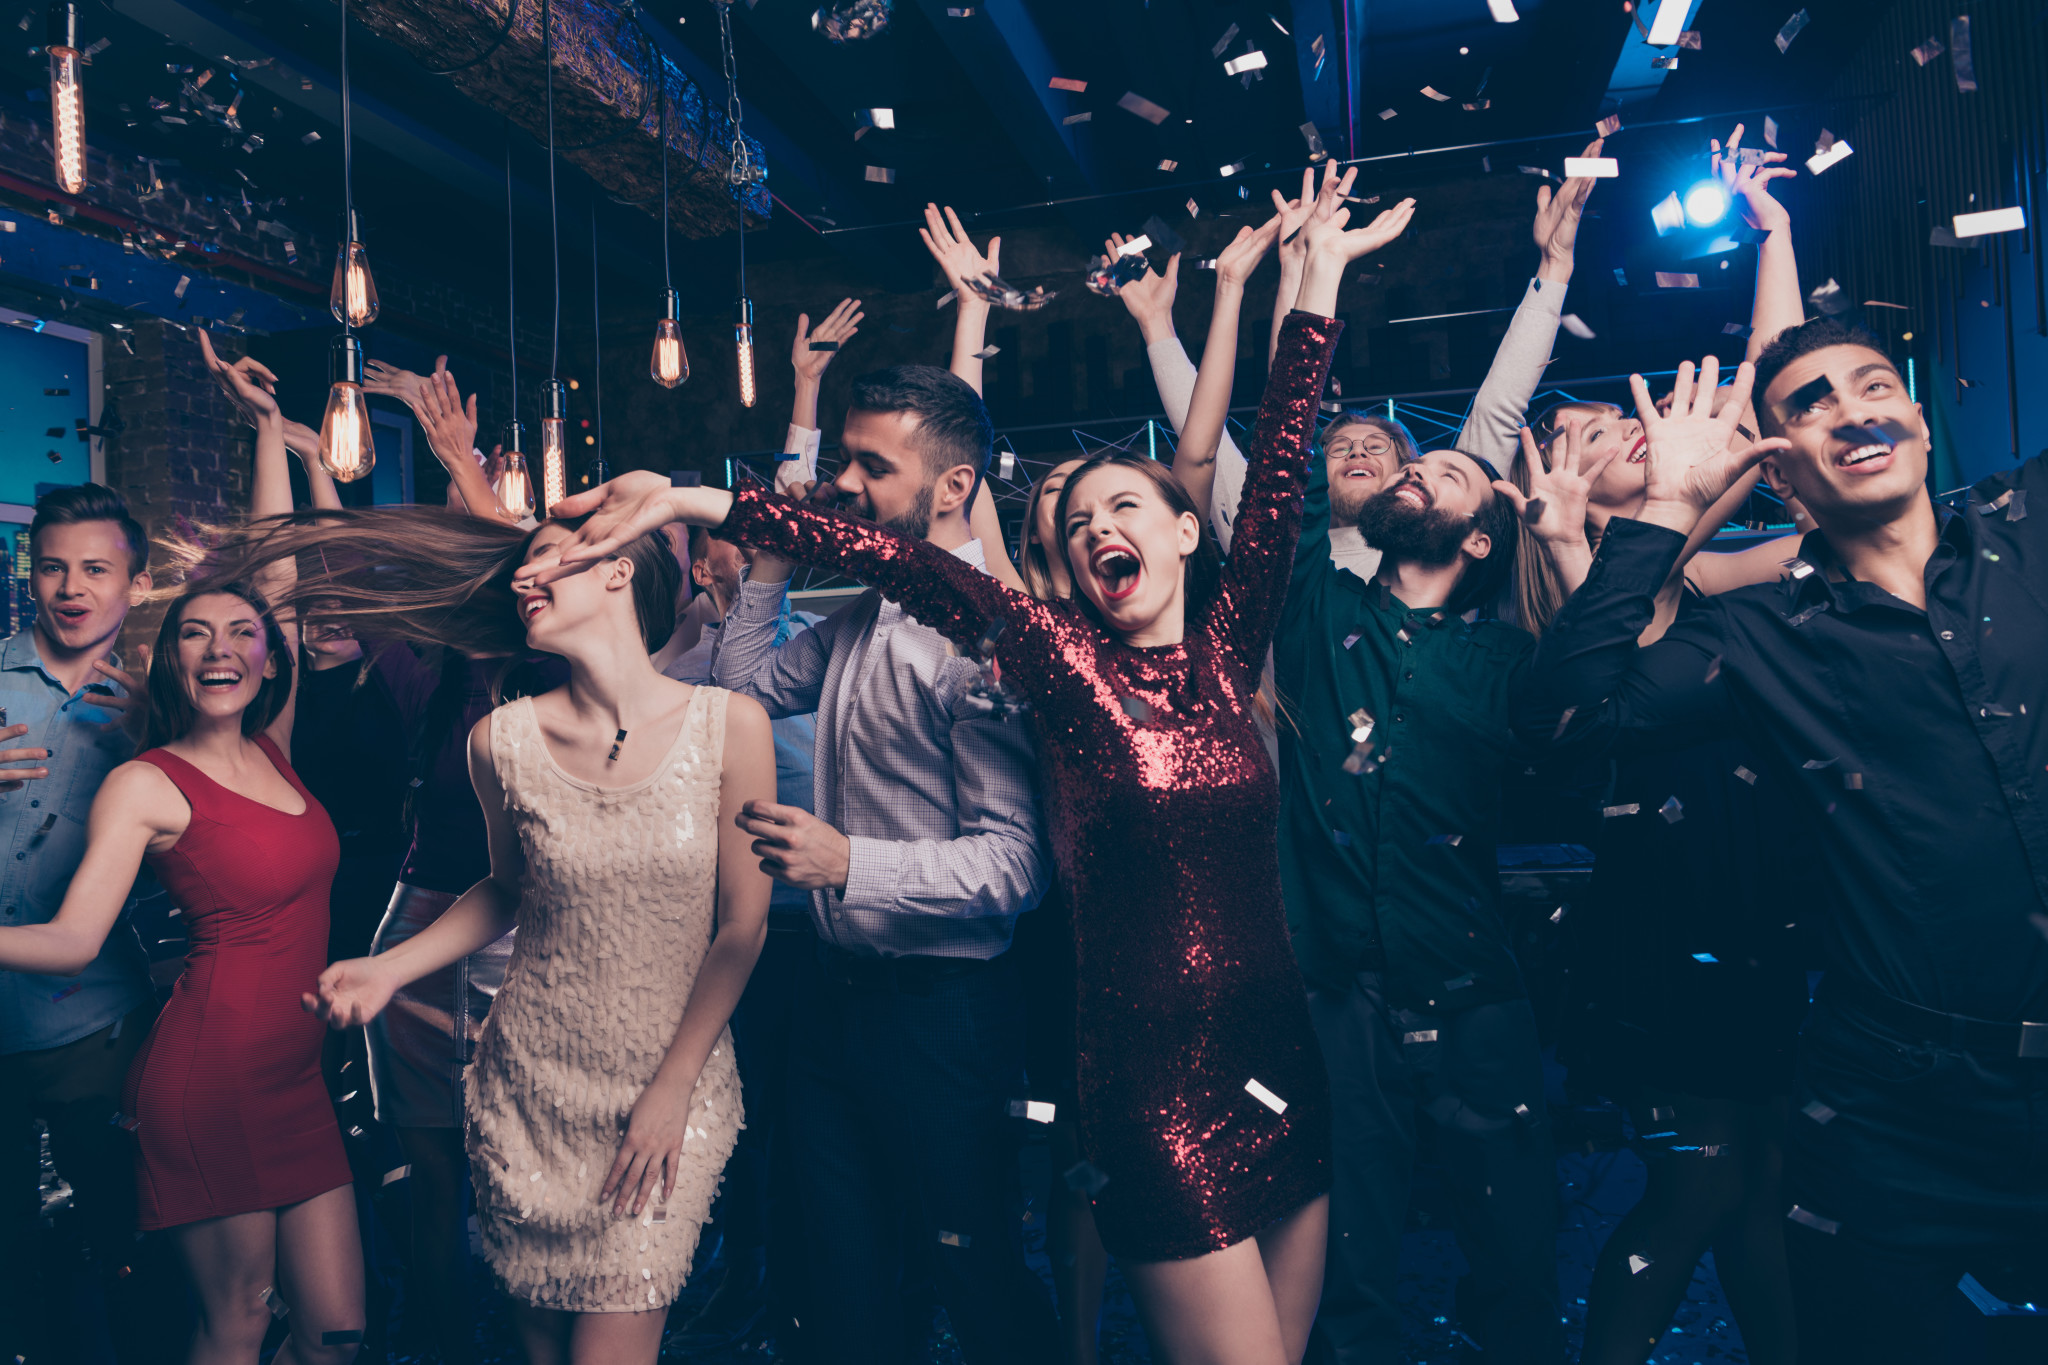 Portrait of cute charming elegant party makers hard formal wear formalwear, suit dress scream shout loud moving delighted indoors event